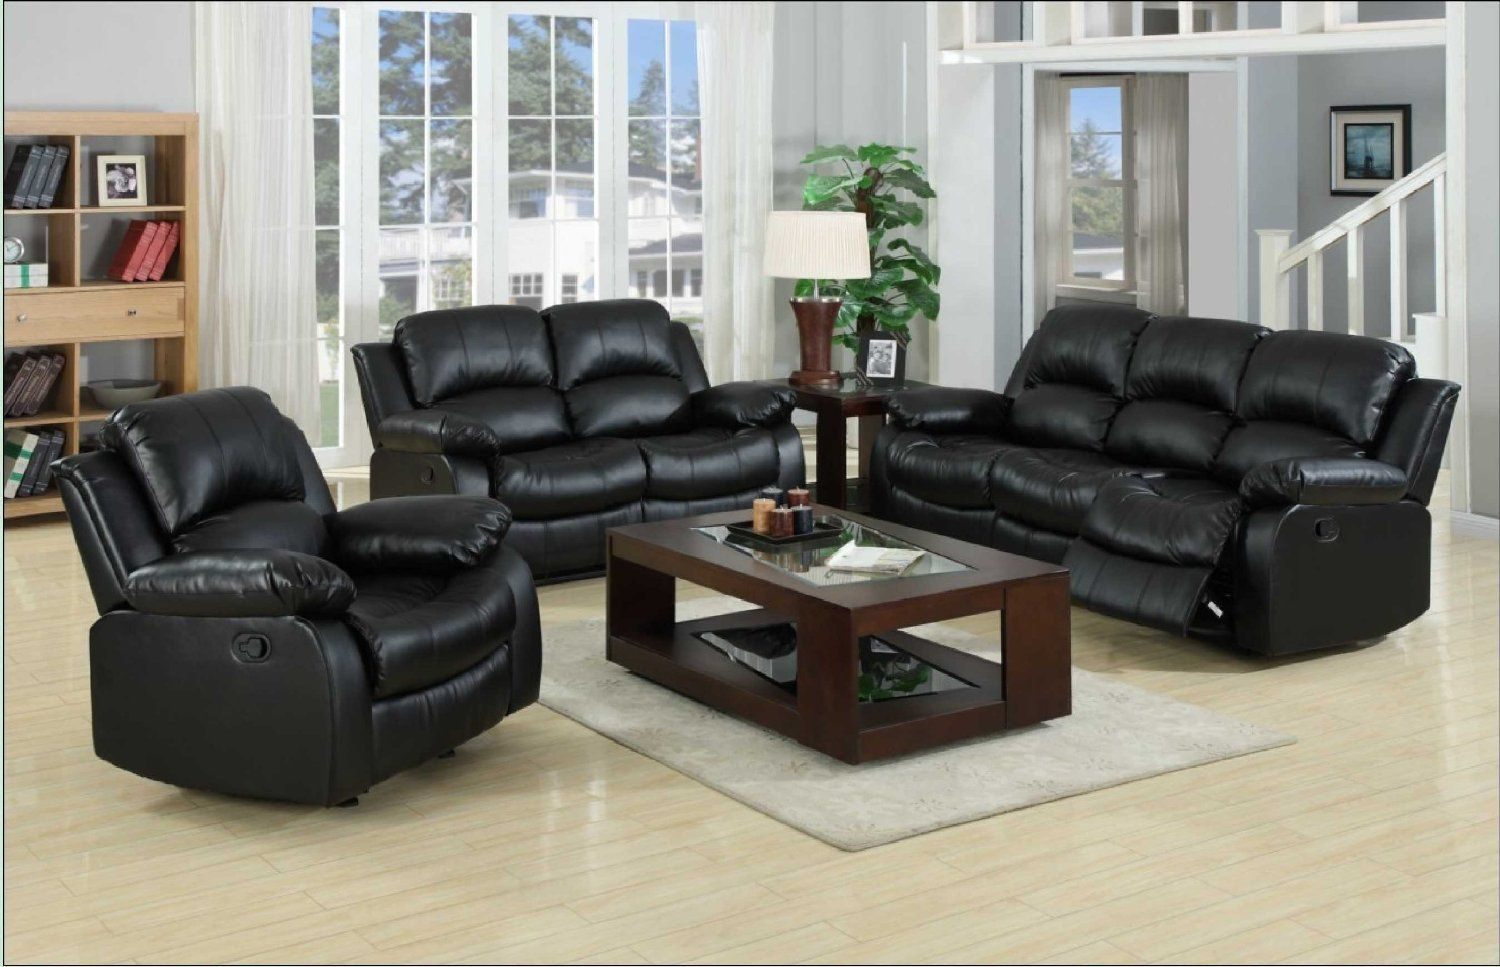 Black Leather Sofa Sale Get Your Dream Affordable Leather Sofa